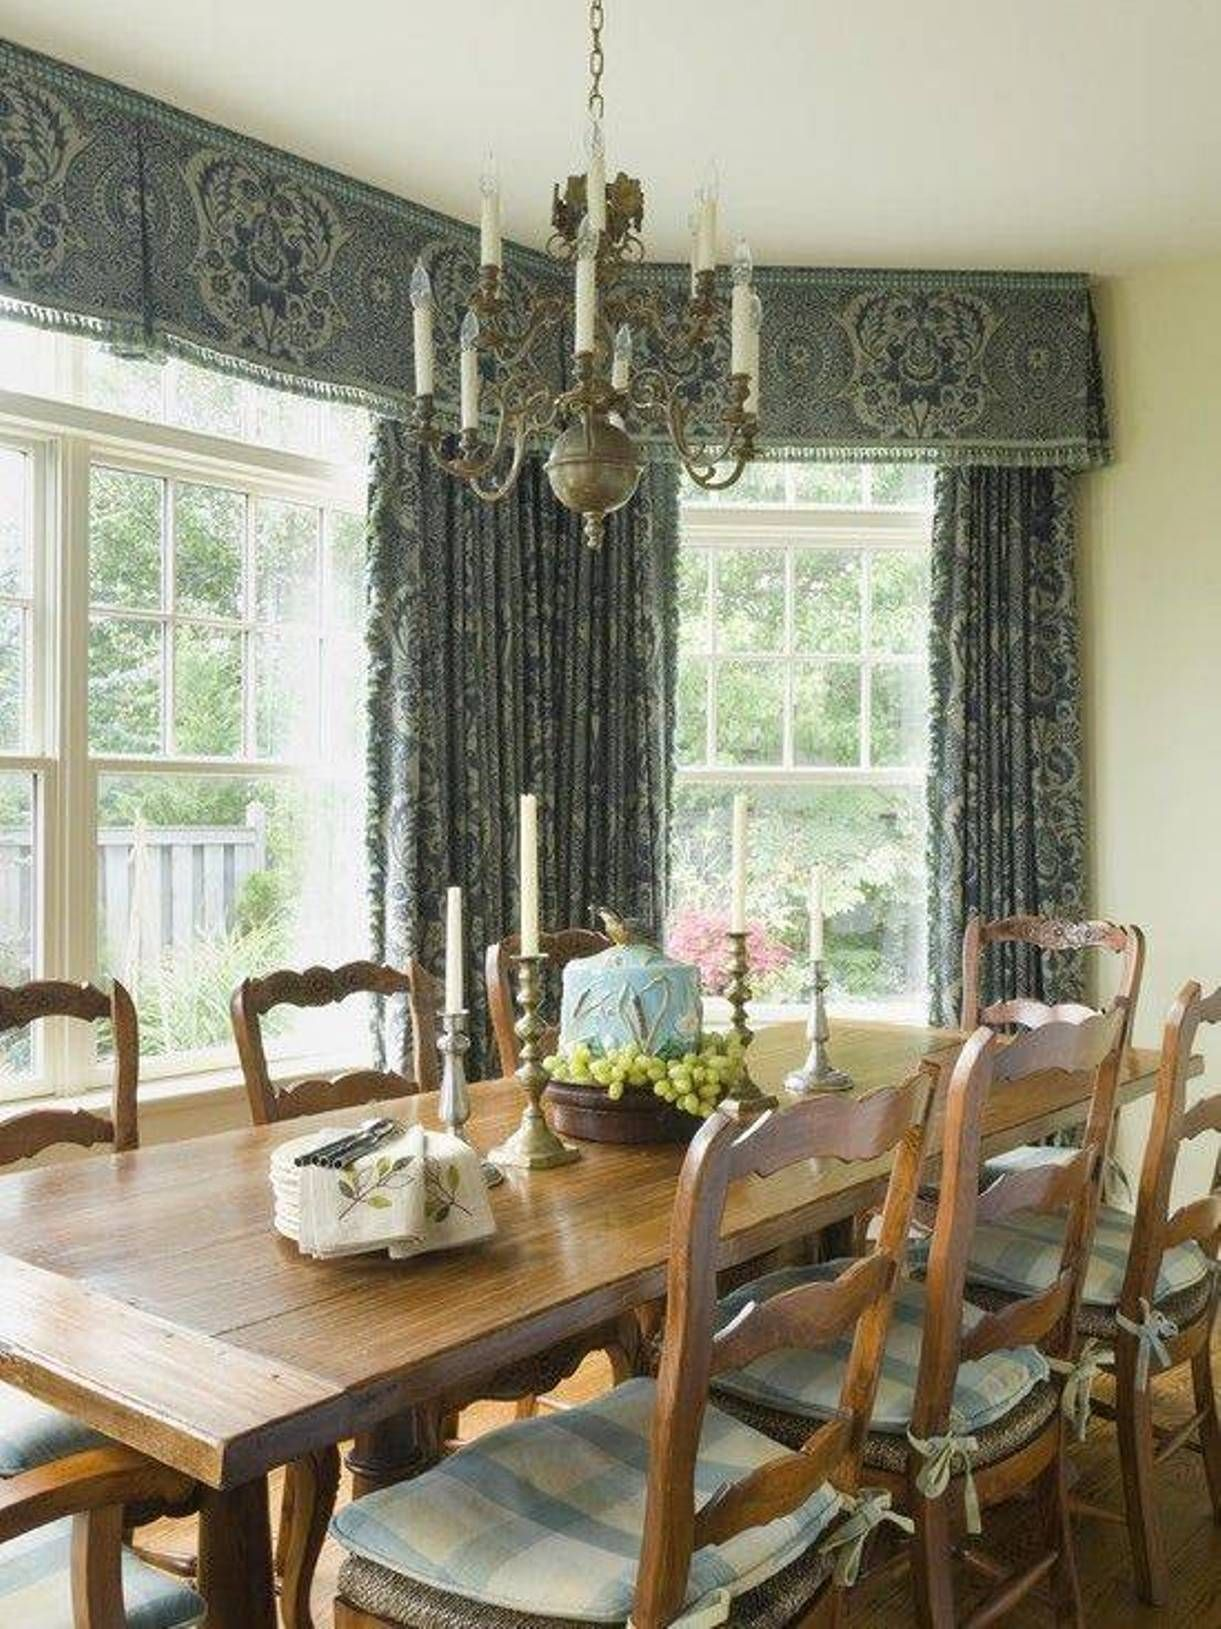 Decorate Your Dining Room Window With Dining Room Valances Dining Room Windows Kitchen Window Treatments Dining Room Drapes